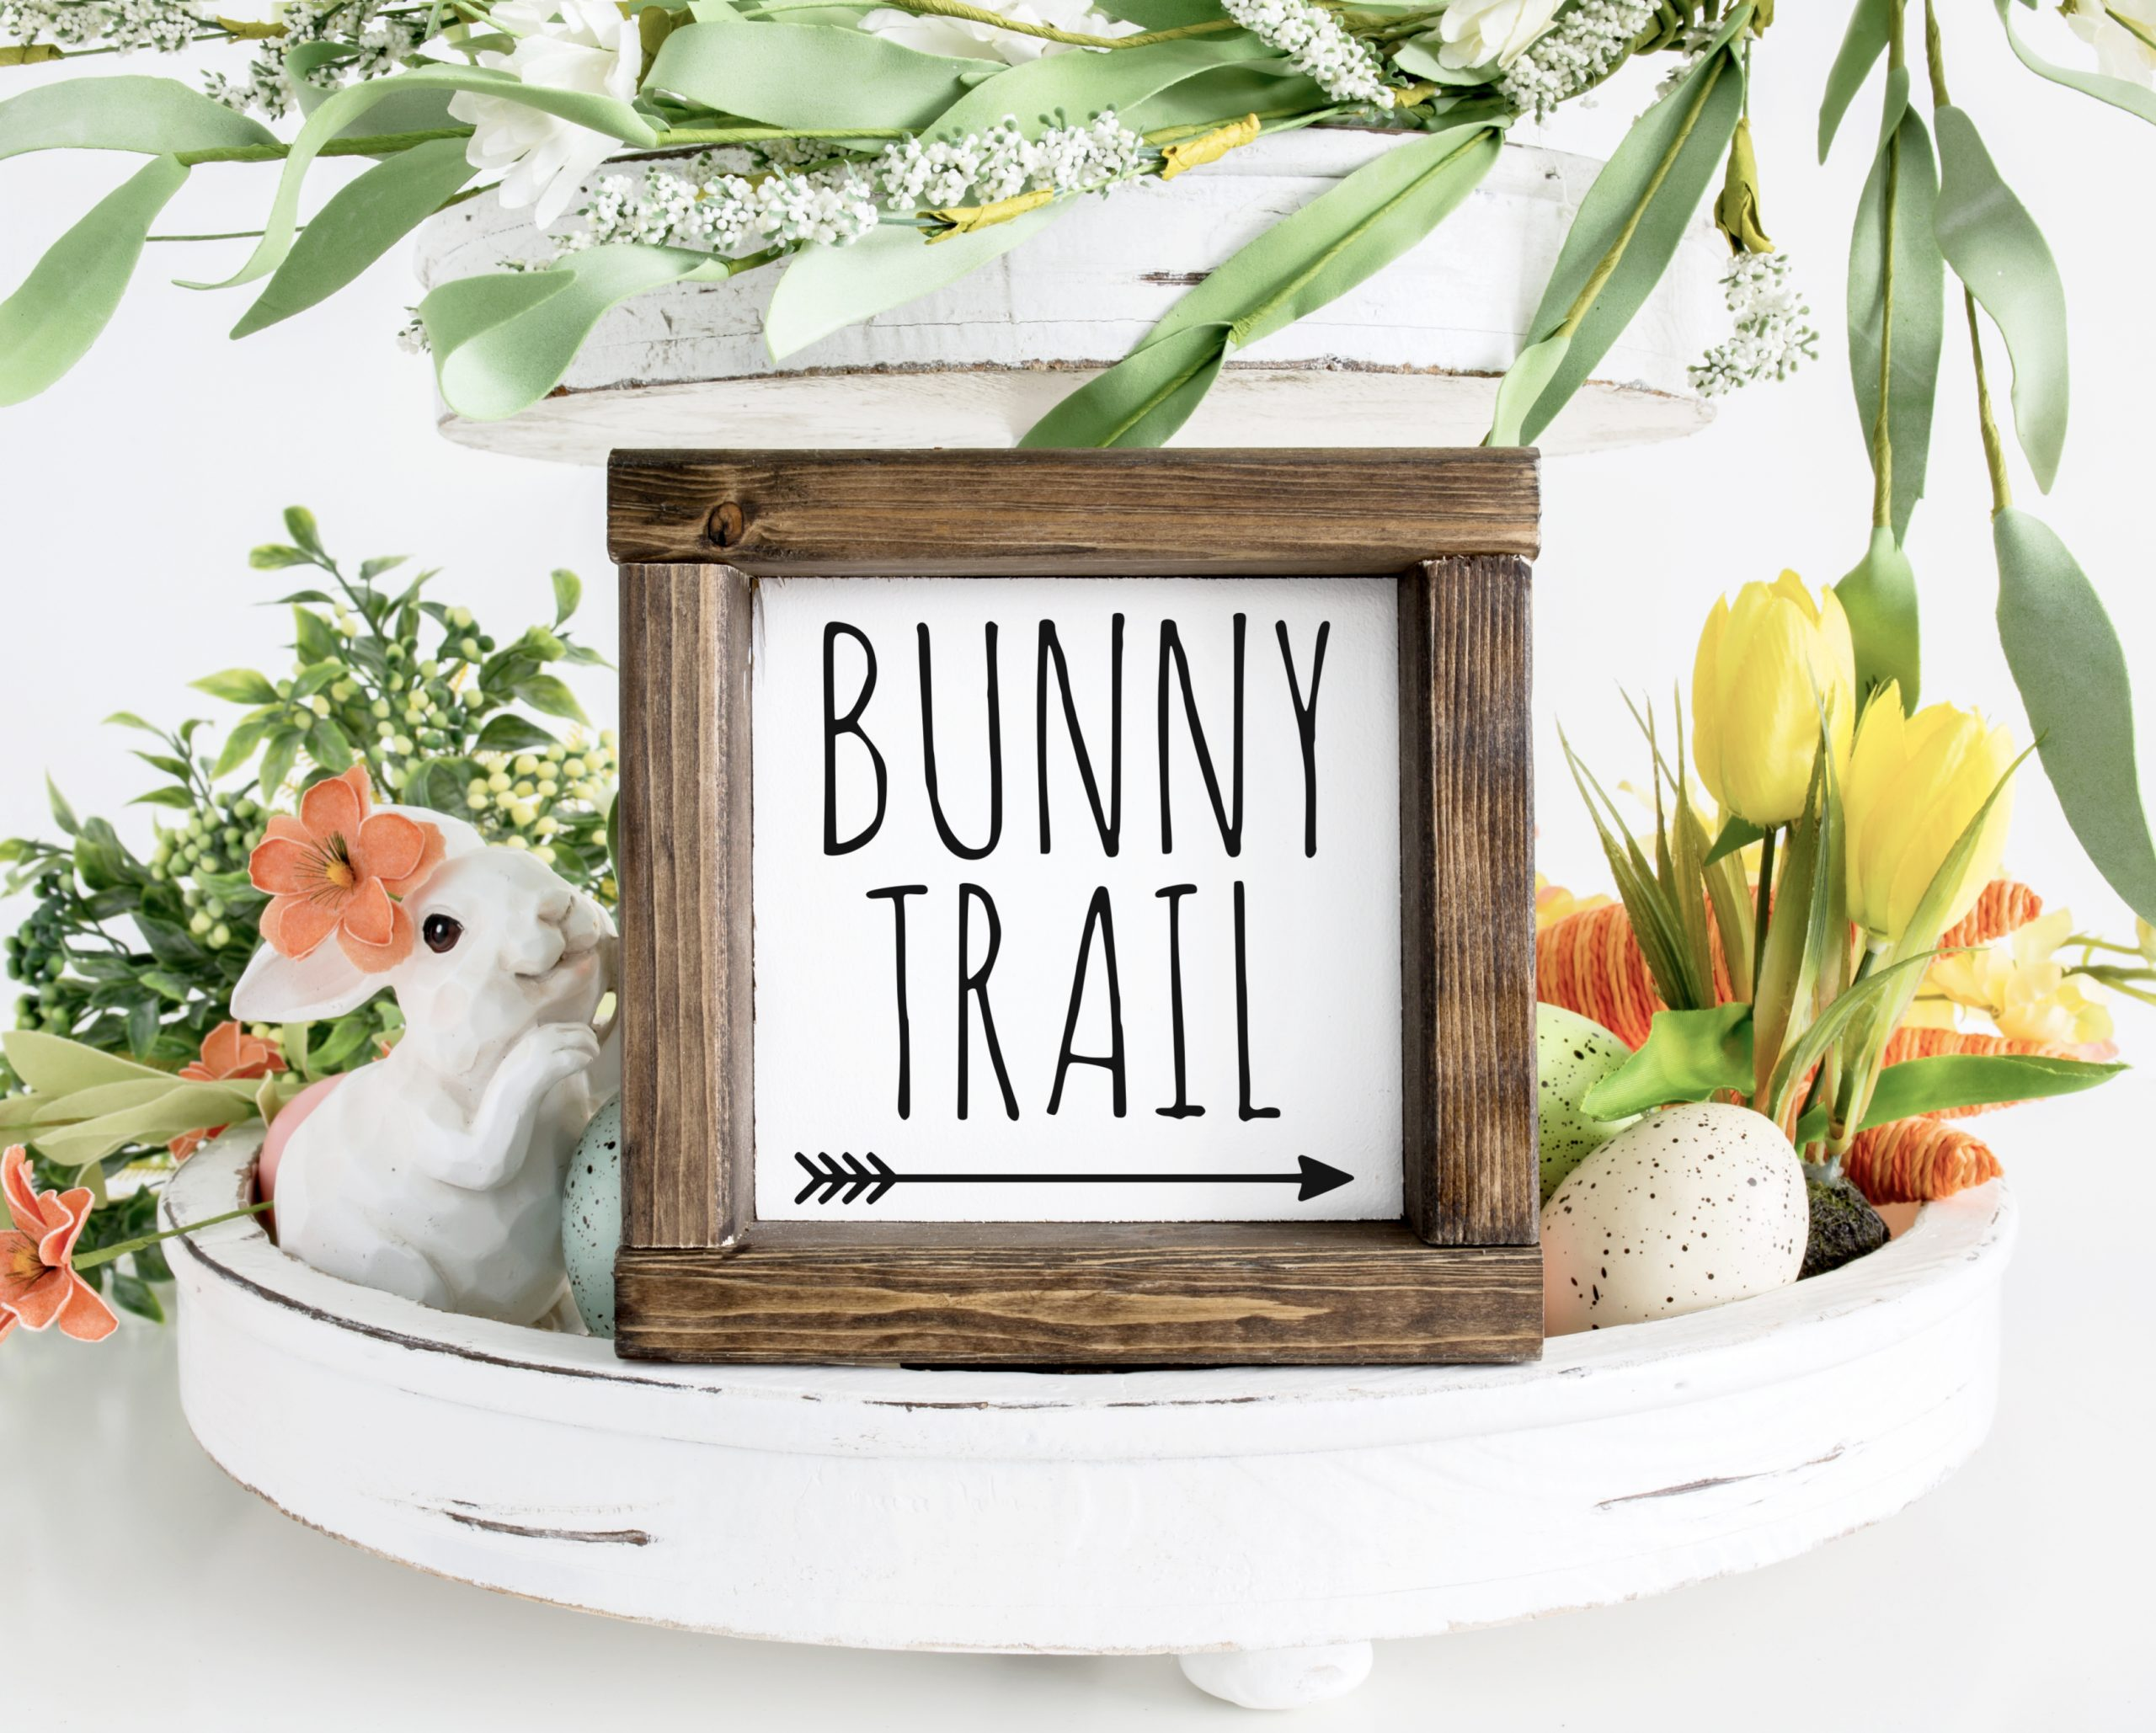 Bunny Trail Wood Sign with Free SVG Cut File